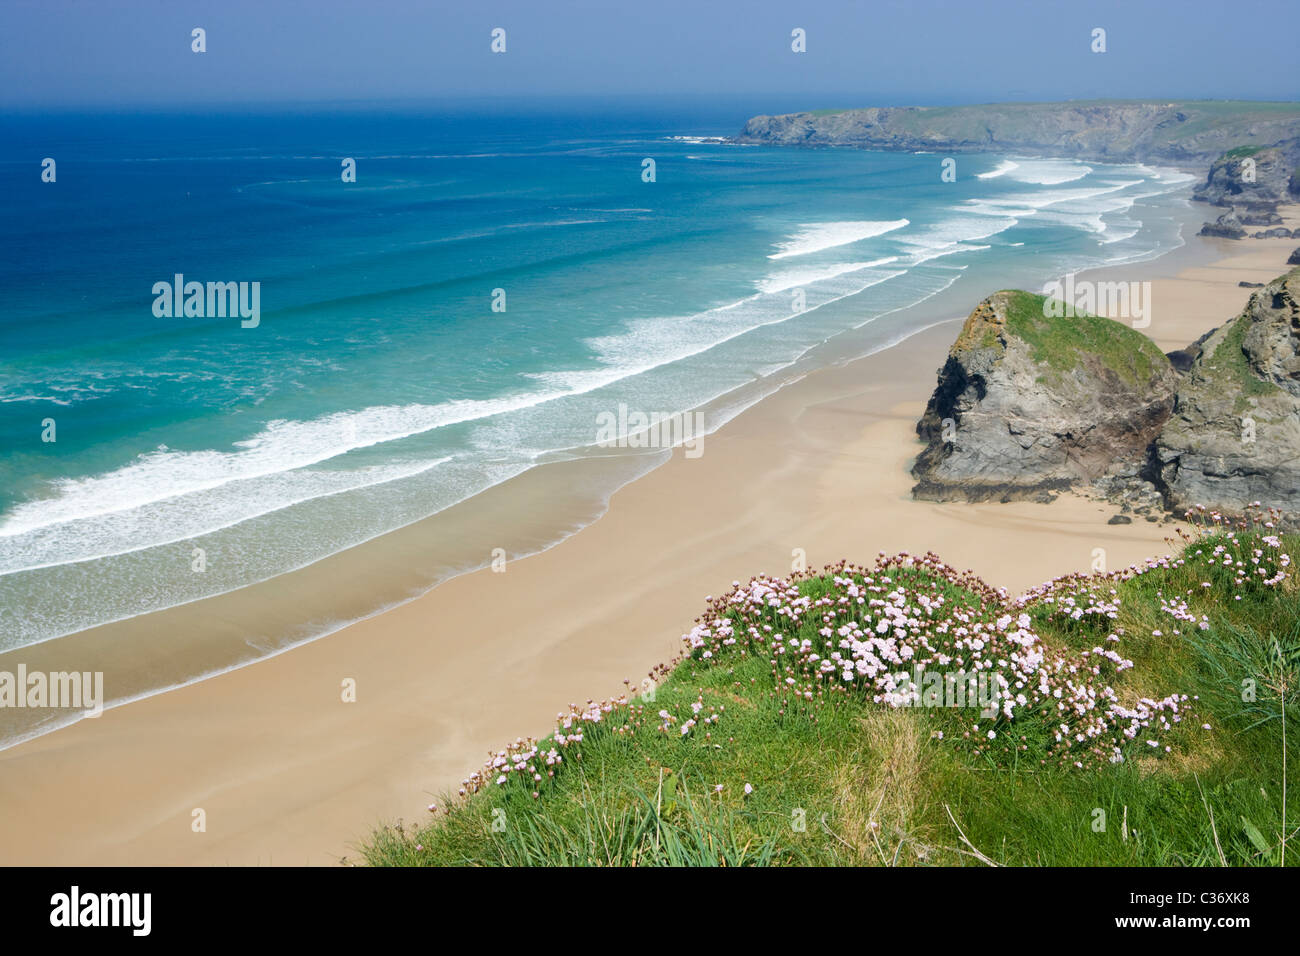 Whitestone Cove and Bedruthan Steps, Cornwall, UK. Thrift in foreground. - Stock Image